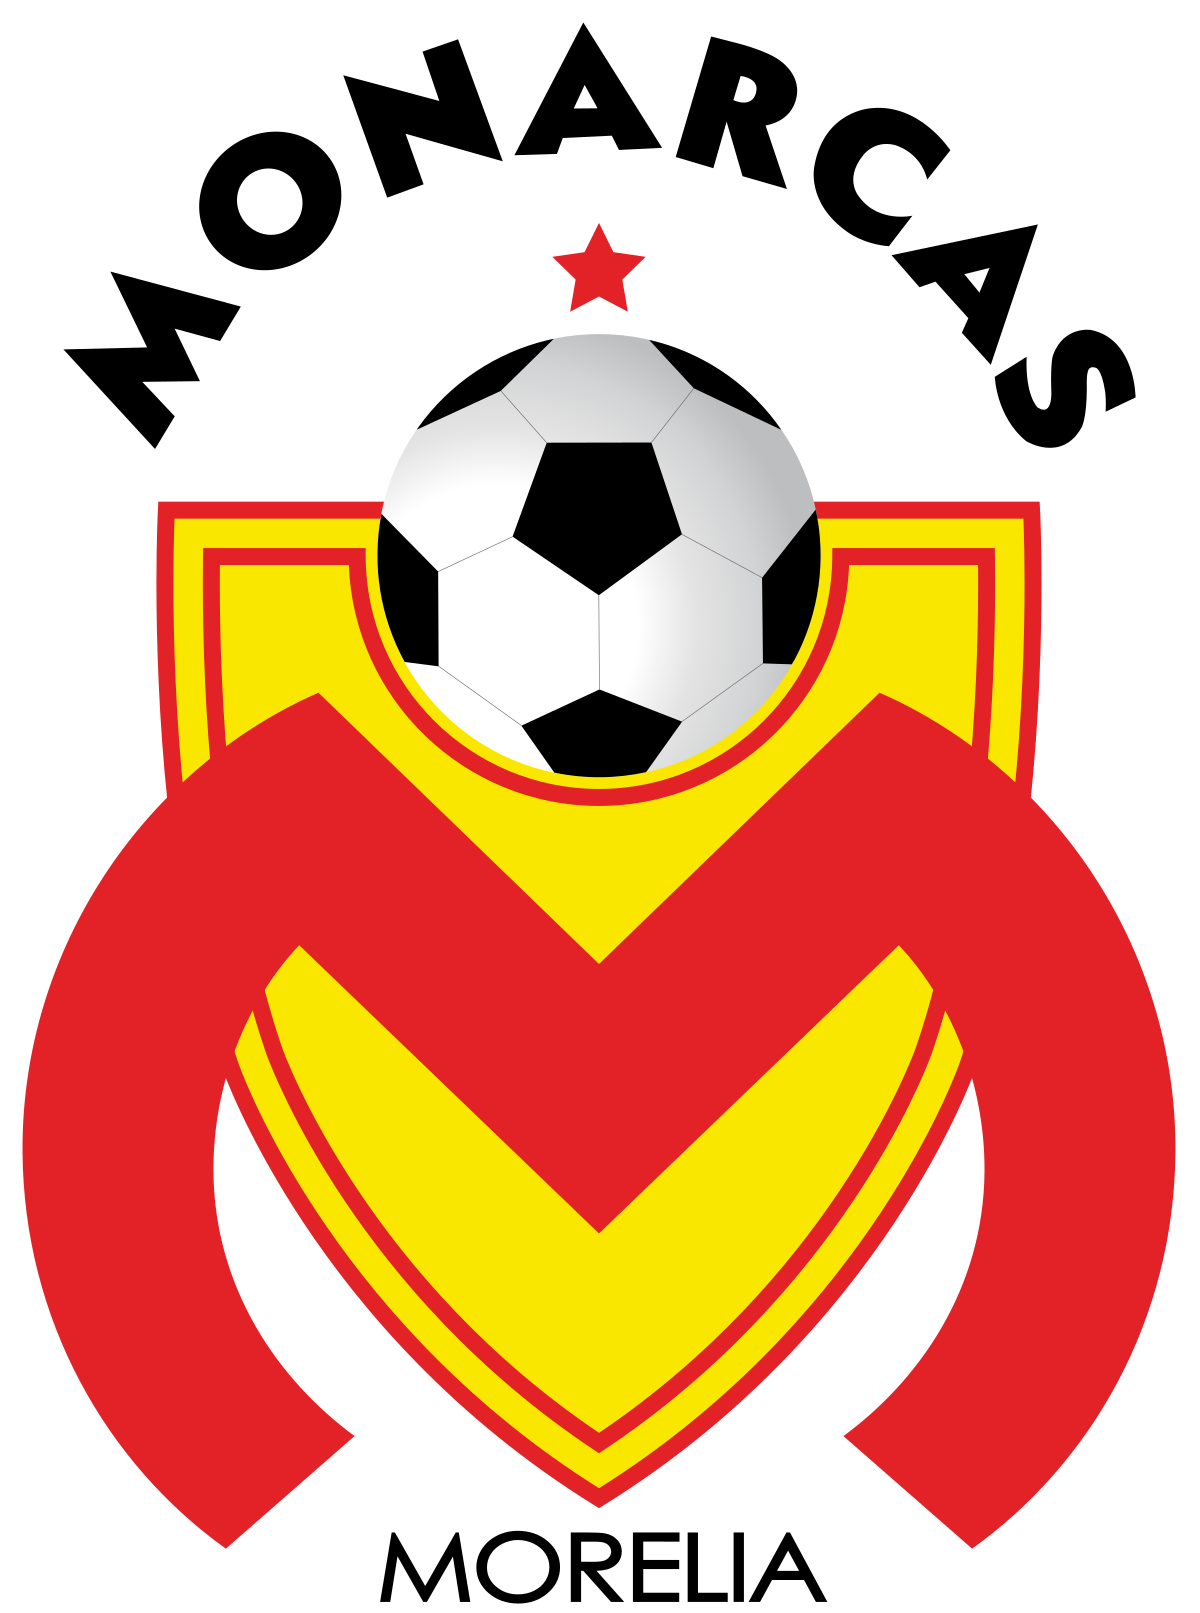 Monarca Morelia Of Mexico Crest Soccer Logo Mexican Soccer League Football Logo